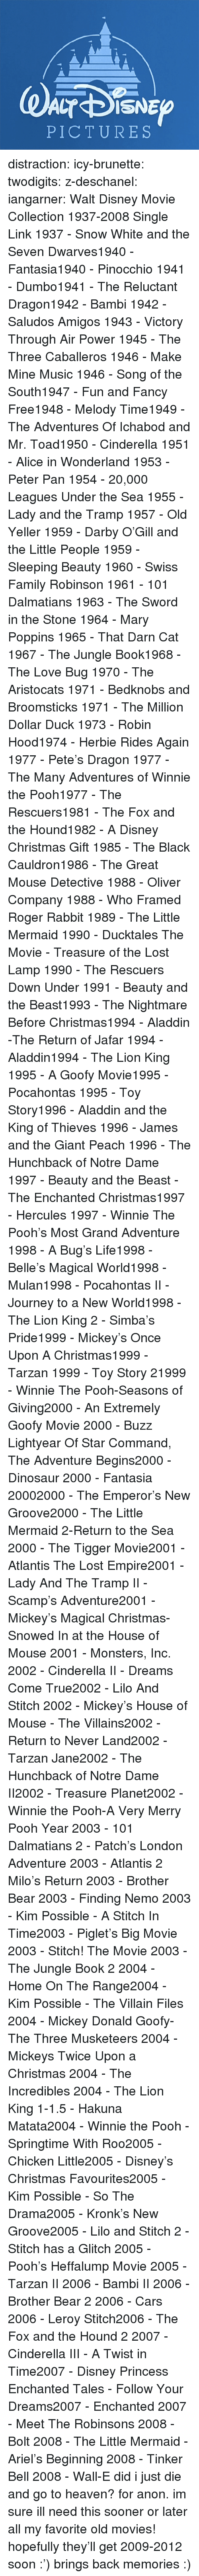 New Groove: PICTURES distraction:   icy-brunette:   twodigits:   z-deschanel:   iangarner:   Walt Disney Movie Collection 1937-2008 Single Link      1937 - Snow White and the Seven Dwarves1940 - Fantasia1940 - Pinocchio 1941 - Dumbo1941 - The Reluctant Dragon1942 - Bambi 1942 - Saludos Amigos 1943 - Victory Through Air Power 1945 - The Three Caballeros 1946 - Make Mine Music 1946 - Song of the South1947 - Fun and Fancy Free1948 - Melody Time1949 - The Adventures Of Ichabod and Mr. Toad1950 - Cinderella 1951 - Alice in Wonderland 1953 - Peter Pan 1954 - 20,000 Leagues Under the Sea 1955 - Lady and the Tramp 1957 - Old Yeller 1959 - Darby O'Gill and the Little People 1959 - Sleeping Beauty 1960 - Swiss Family Robinson 1961 - 101 Dalmatians 1963 - The Sword in the Stone 1964 - Mary Poppins 1965 - That Darn Cat 1967 - The Jungle Book1968 - The Love Bug 1970 - The Aristocats 1971 - Bedknobs and Broomsticks 1971 - The Million Dollar Duck 1973 - Robin Hood1974 - Herbie Rides Again 1977 - Pete's Dragon 1977 - The Many Adventures of Winnie the Pooh1977 - The Rescuers1981 - The Fox and the Hound1982 - A Disney Christmas Gift 1985 - The Black Cauldron1986 - The Great Mouse Detective 1988 - Oliver  Company 1988 - Who Framed Roger Rabbit 1989 - The Little Mermaid 1990 - Ducktales The Movie - Treasure of the Lost Lamp 1990 - The Rescuers Down Under 1991 - Beauty and the Beast1993 - The Nightmare Before Christmas1994 - Aladdin -The Return of Jafar 1994 - Aladdin1994 - The Lion King 1995 - A Goofy Movie1995 - Pocahontas 1995 - Toy Story1996 - Aladdin and the King of Thieves 1996 - James and the Giant Peach 1996 - The Hunchback of Notre Dame 1997 - Beauty and the Beast - The Enchanted Christmas1997 - Hercules 1997 - Winnie The Pooh's Most Grand Adventure 1998 - A Bug's Life1998 - Belle's Magical World1998 - Mulan1998 - Pocahontas II - Journey to a New World1998 - The Lion King 2 - Simba's Pride1999 - Mickey's Once Upon A Christmas1999 - Tarzan 1999 - Toy Story 21999 - Winnie The Poo